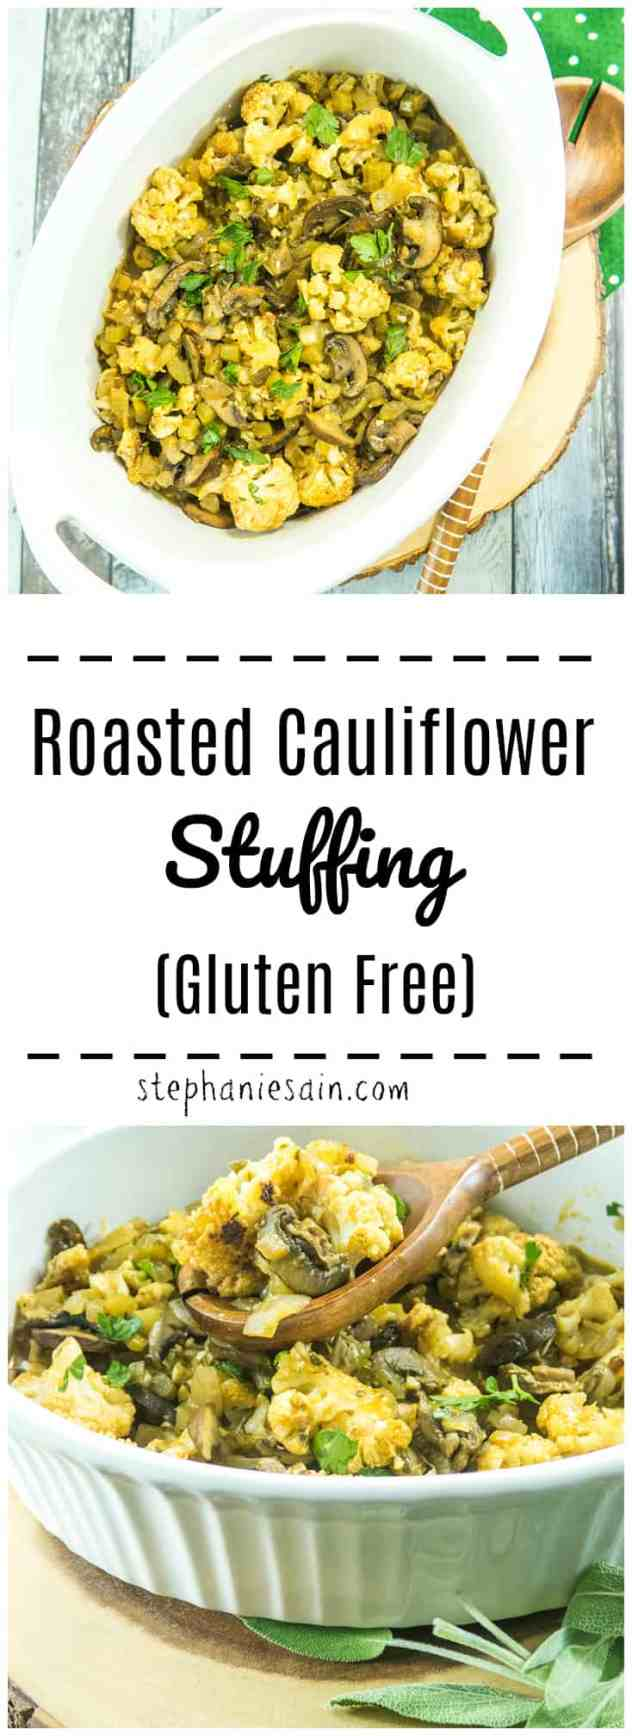 Roasted Cauliflower Stuffing is a low carb, gluten free alternative to traditional bread stuffing. Made with all the same traditional flavors, along with roasted cauliflower. Great as a holiday side or anytime. Vegan option .